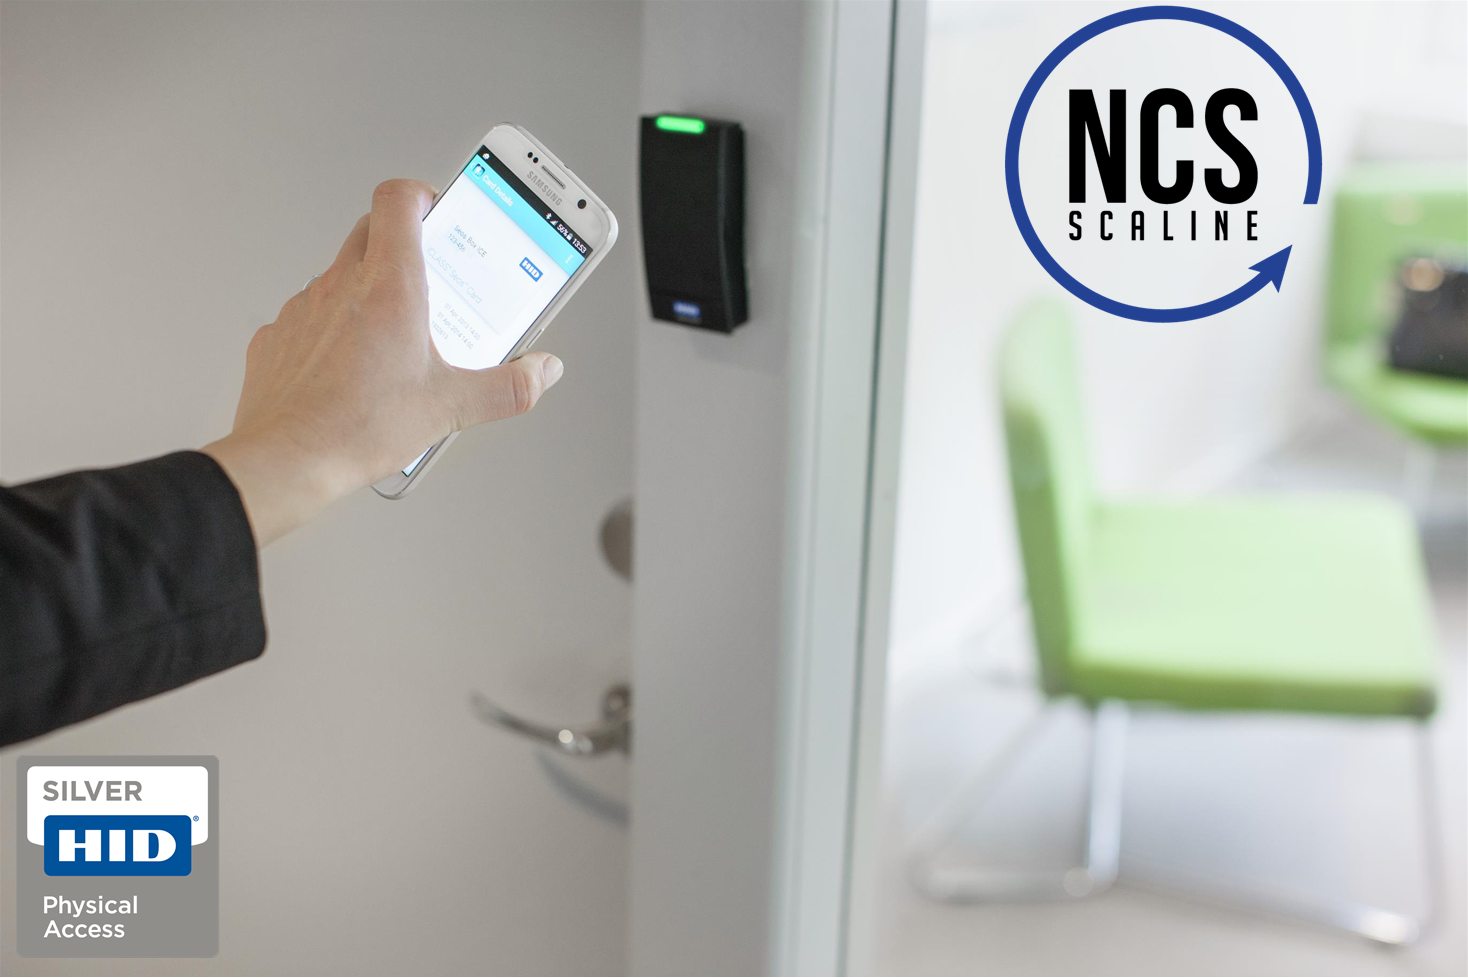 NCS HID mobile Access integration